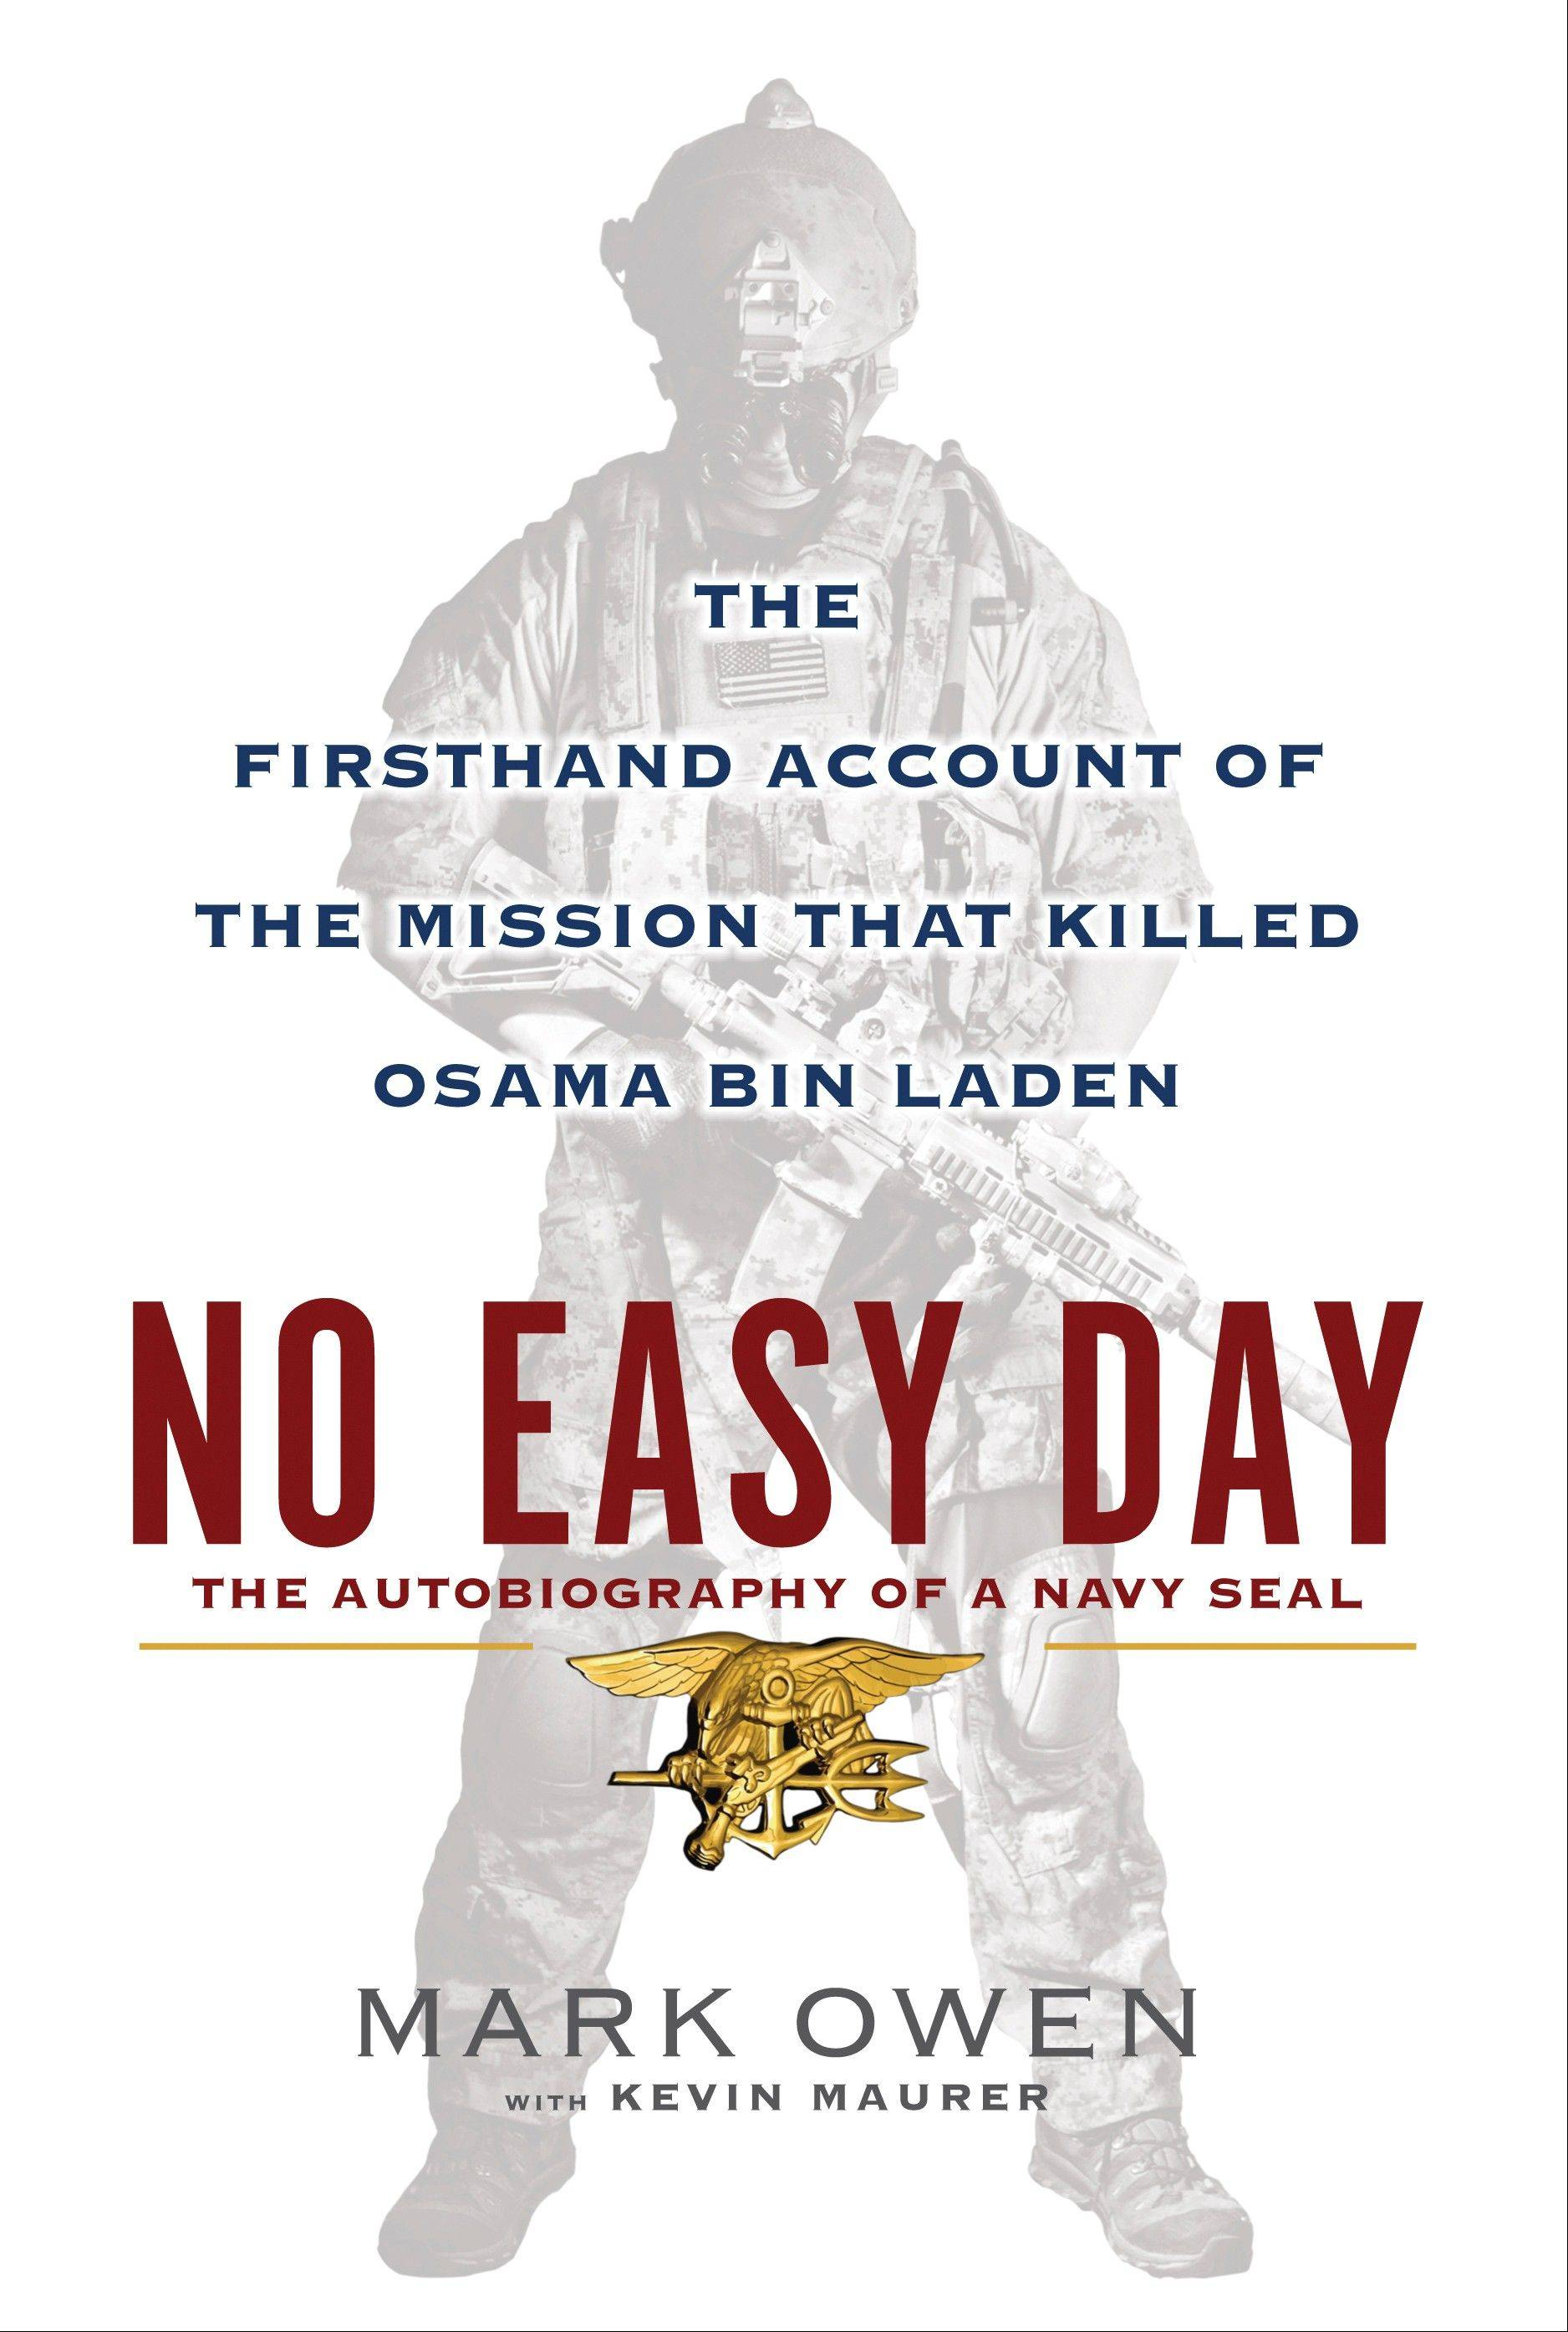 A former Navy SEAL's insider account of the raid that killed Osama bin Laden contains classified information, the Pentagon said Tuesday, and the admiral who heads the Naval Special Warfare Command said details in the book may provide enemies with dangerous insight into their secretive operations.